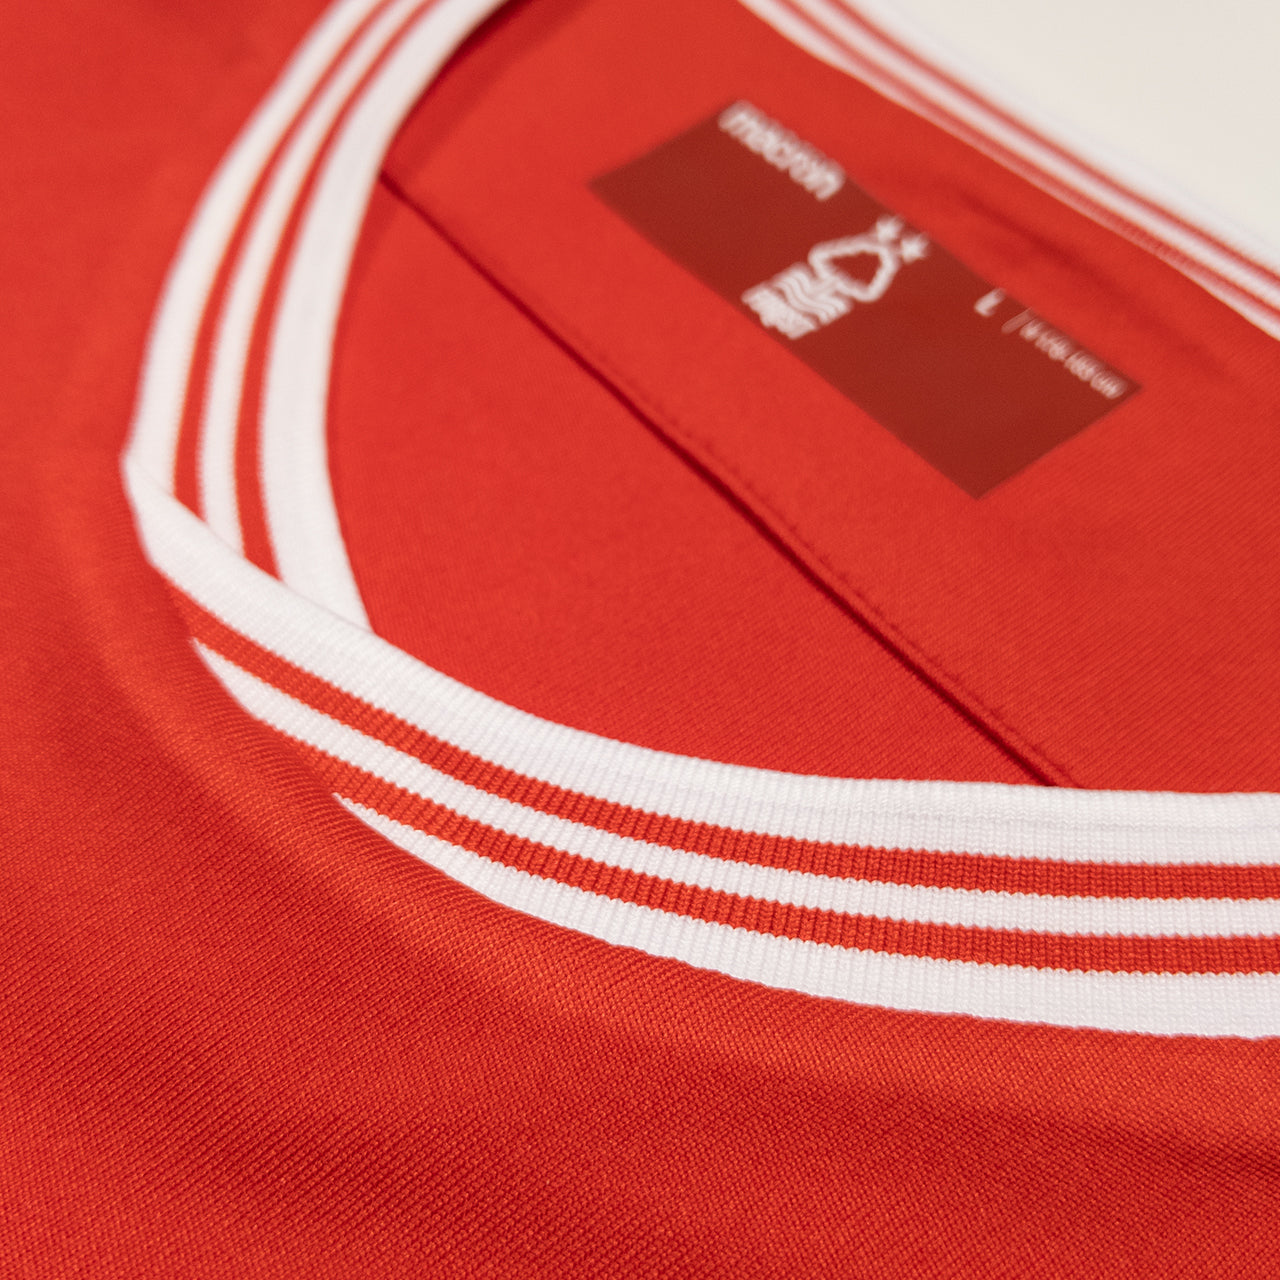 NFFC Mens Home Shirt 2020/21